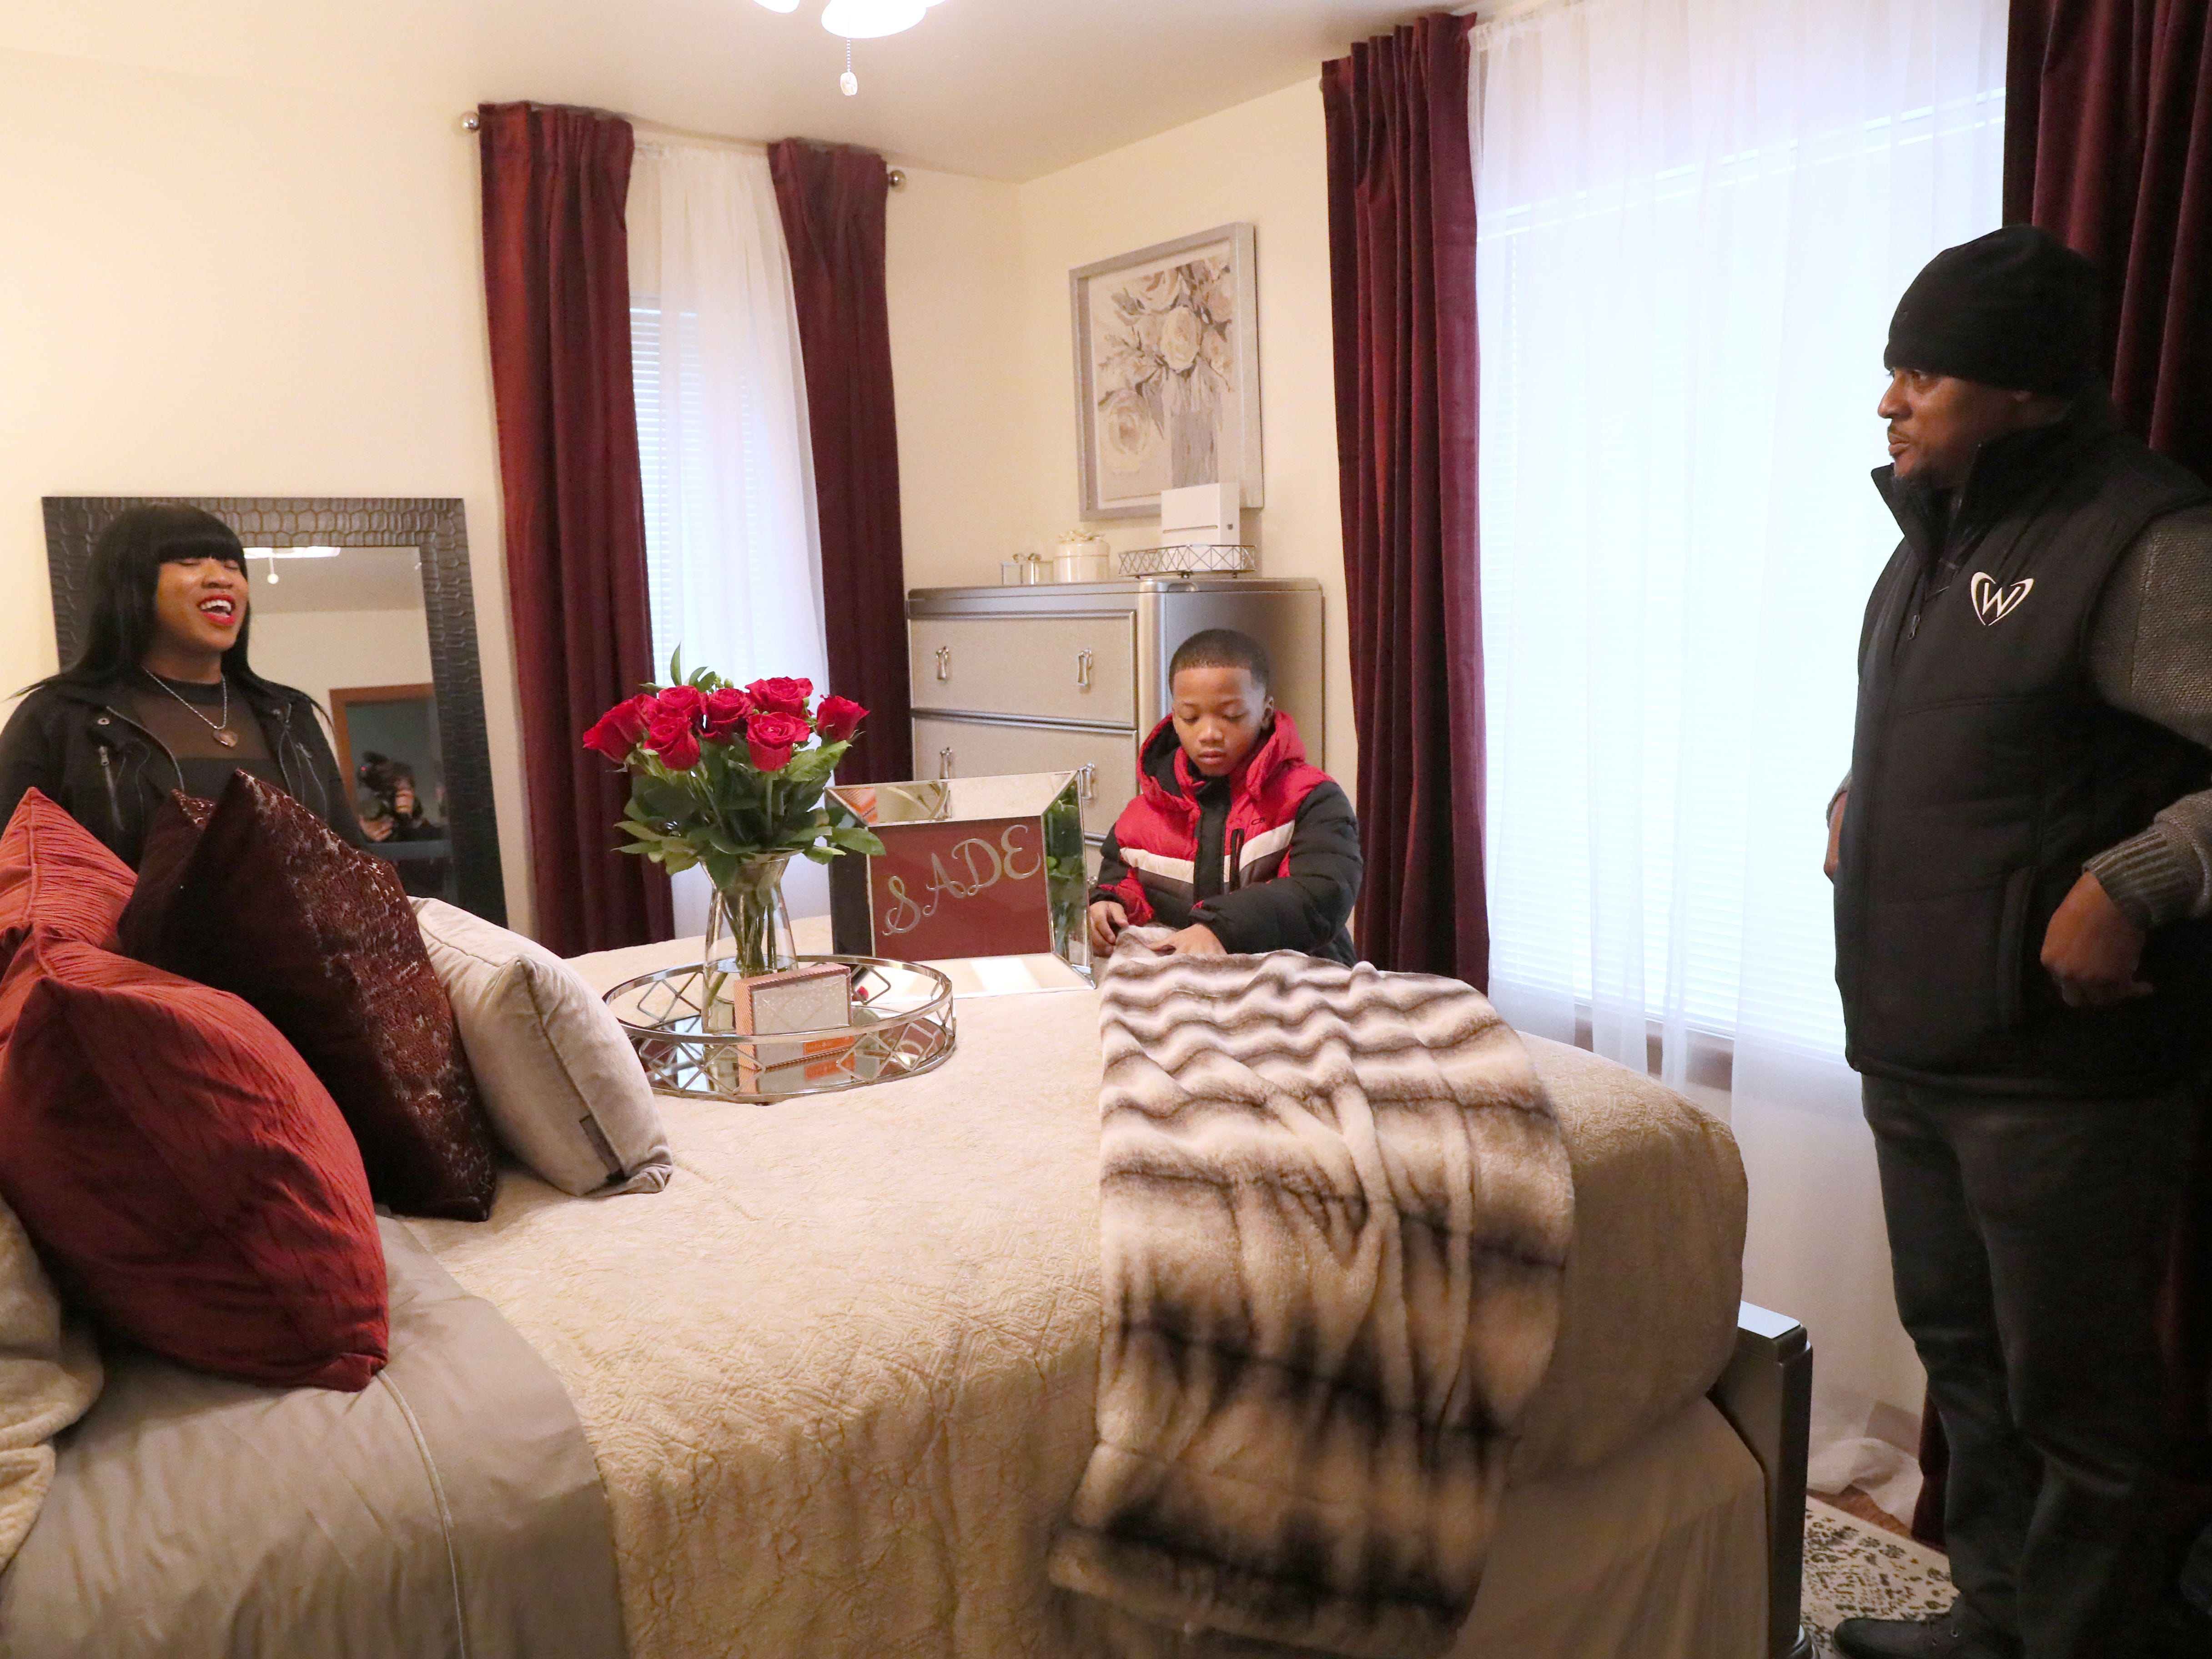 Sade and her son Demarion look over the master bedroom while  Warrick Dunn looks on.